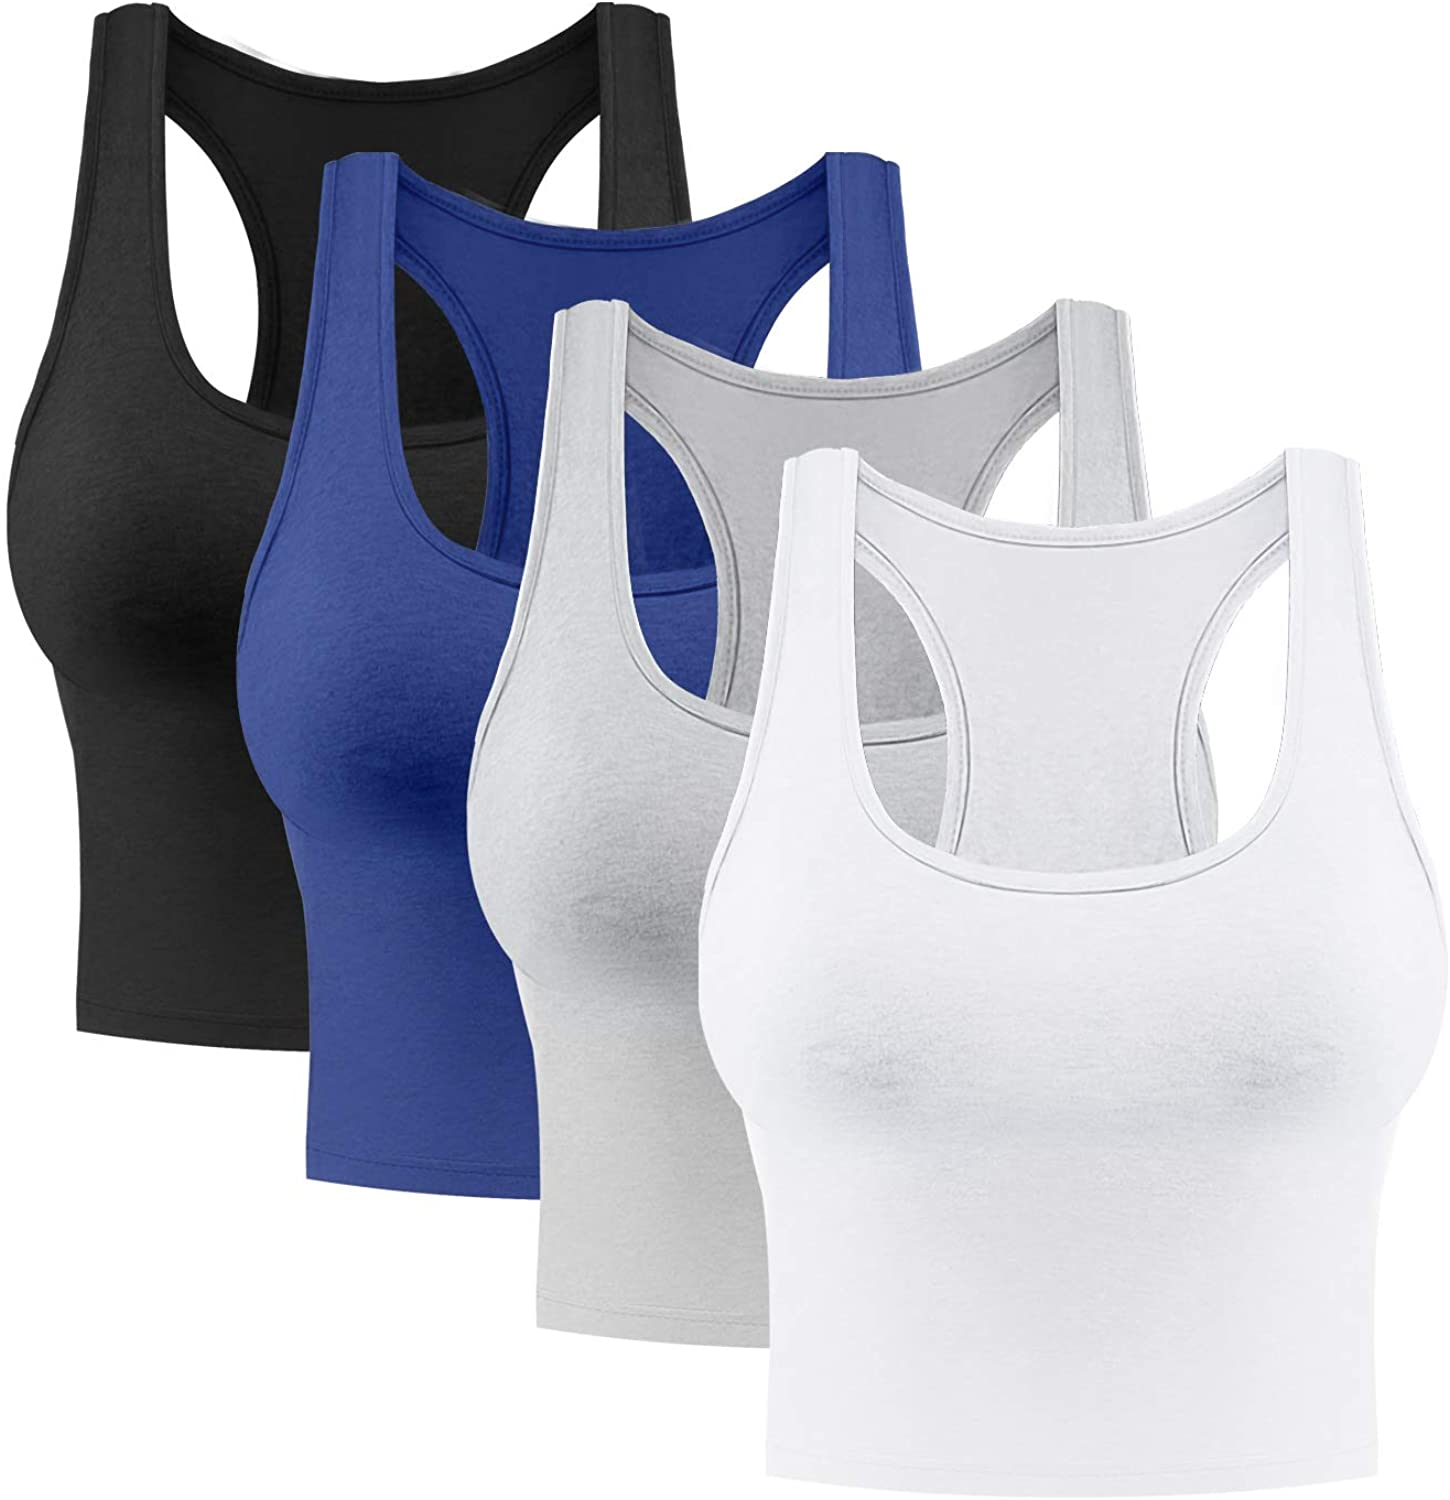 Rugome Cotton Workout Crop Tank Tops for Women Racerback Cropped Tank top Exercise Yoga Shirts 2 Pack